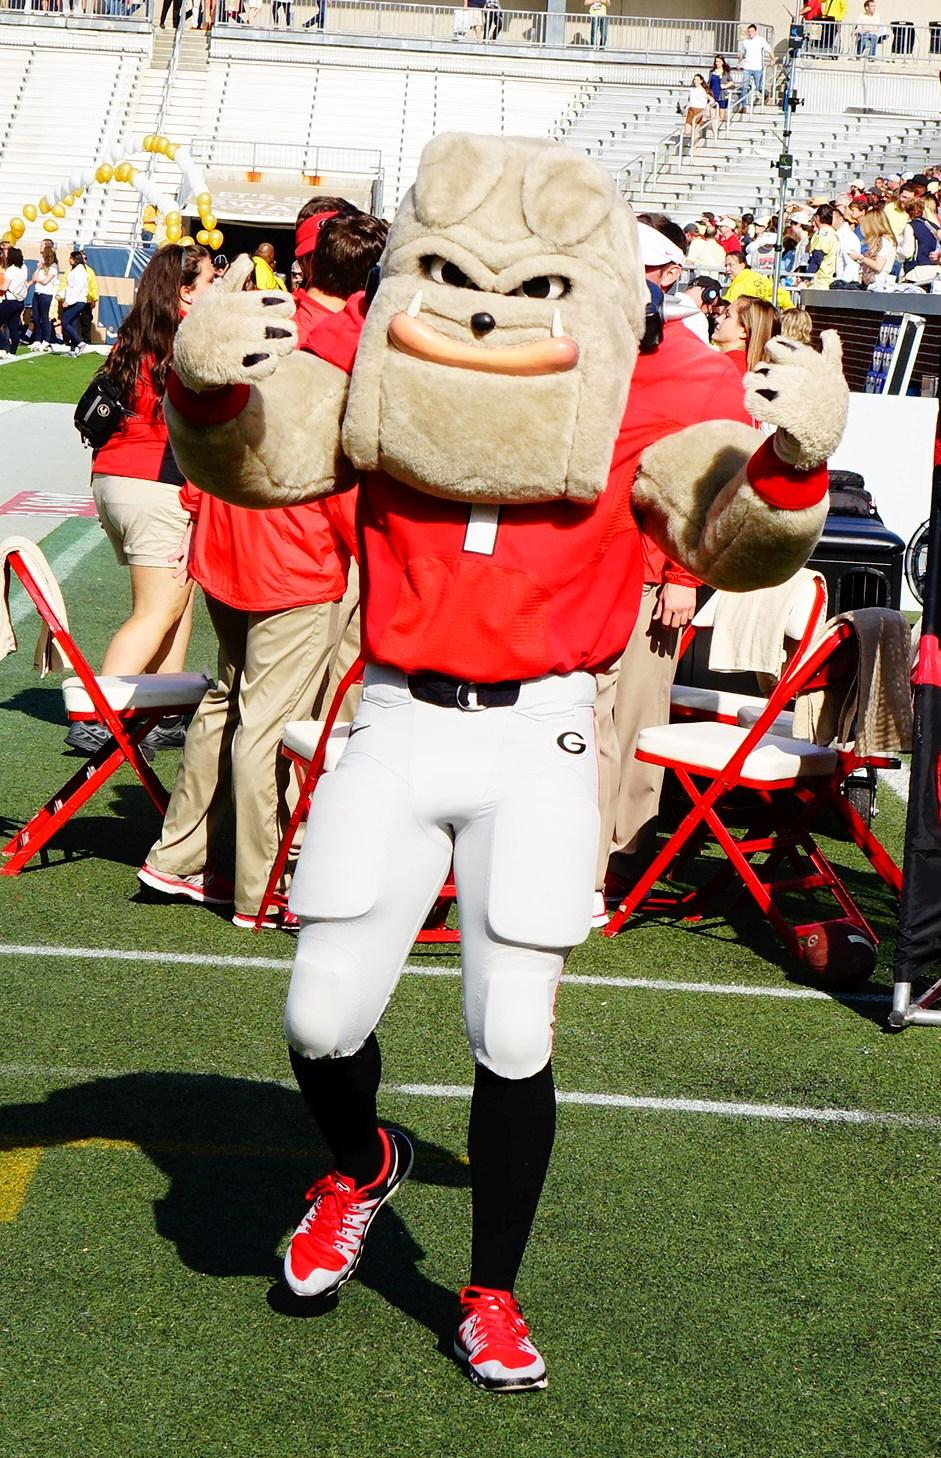 Hairy Dawg is ready to go - Georgia vs. Tech 28-Nov-2015 (Photo by Bulldawg Illustrated's Greg Poole)